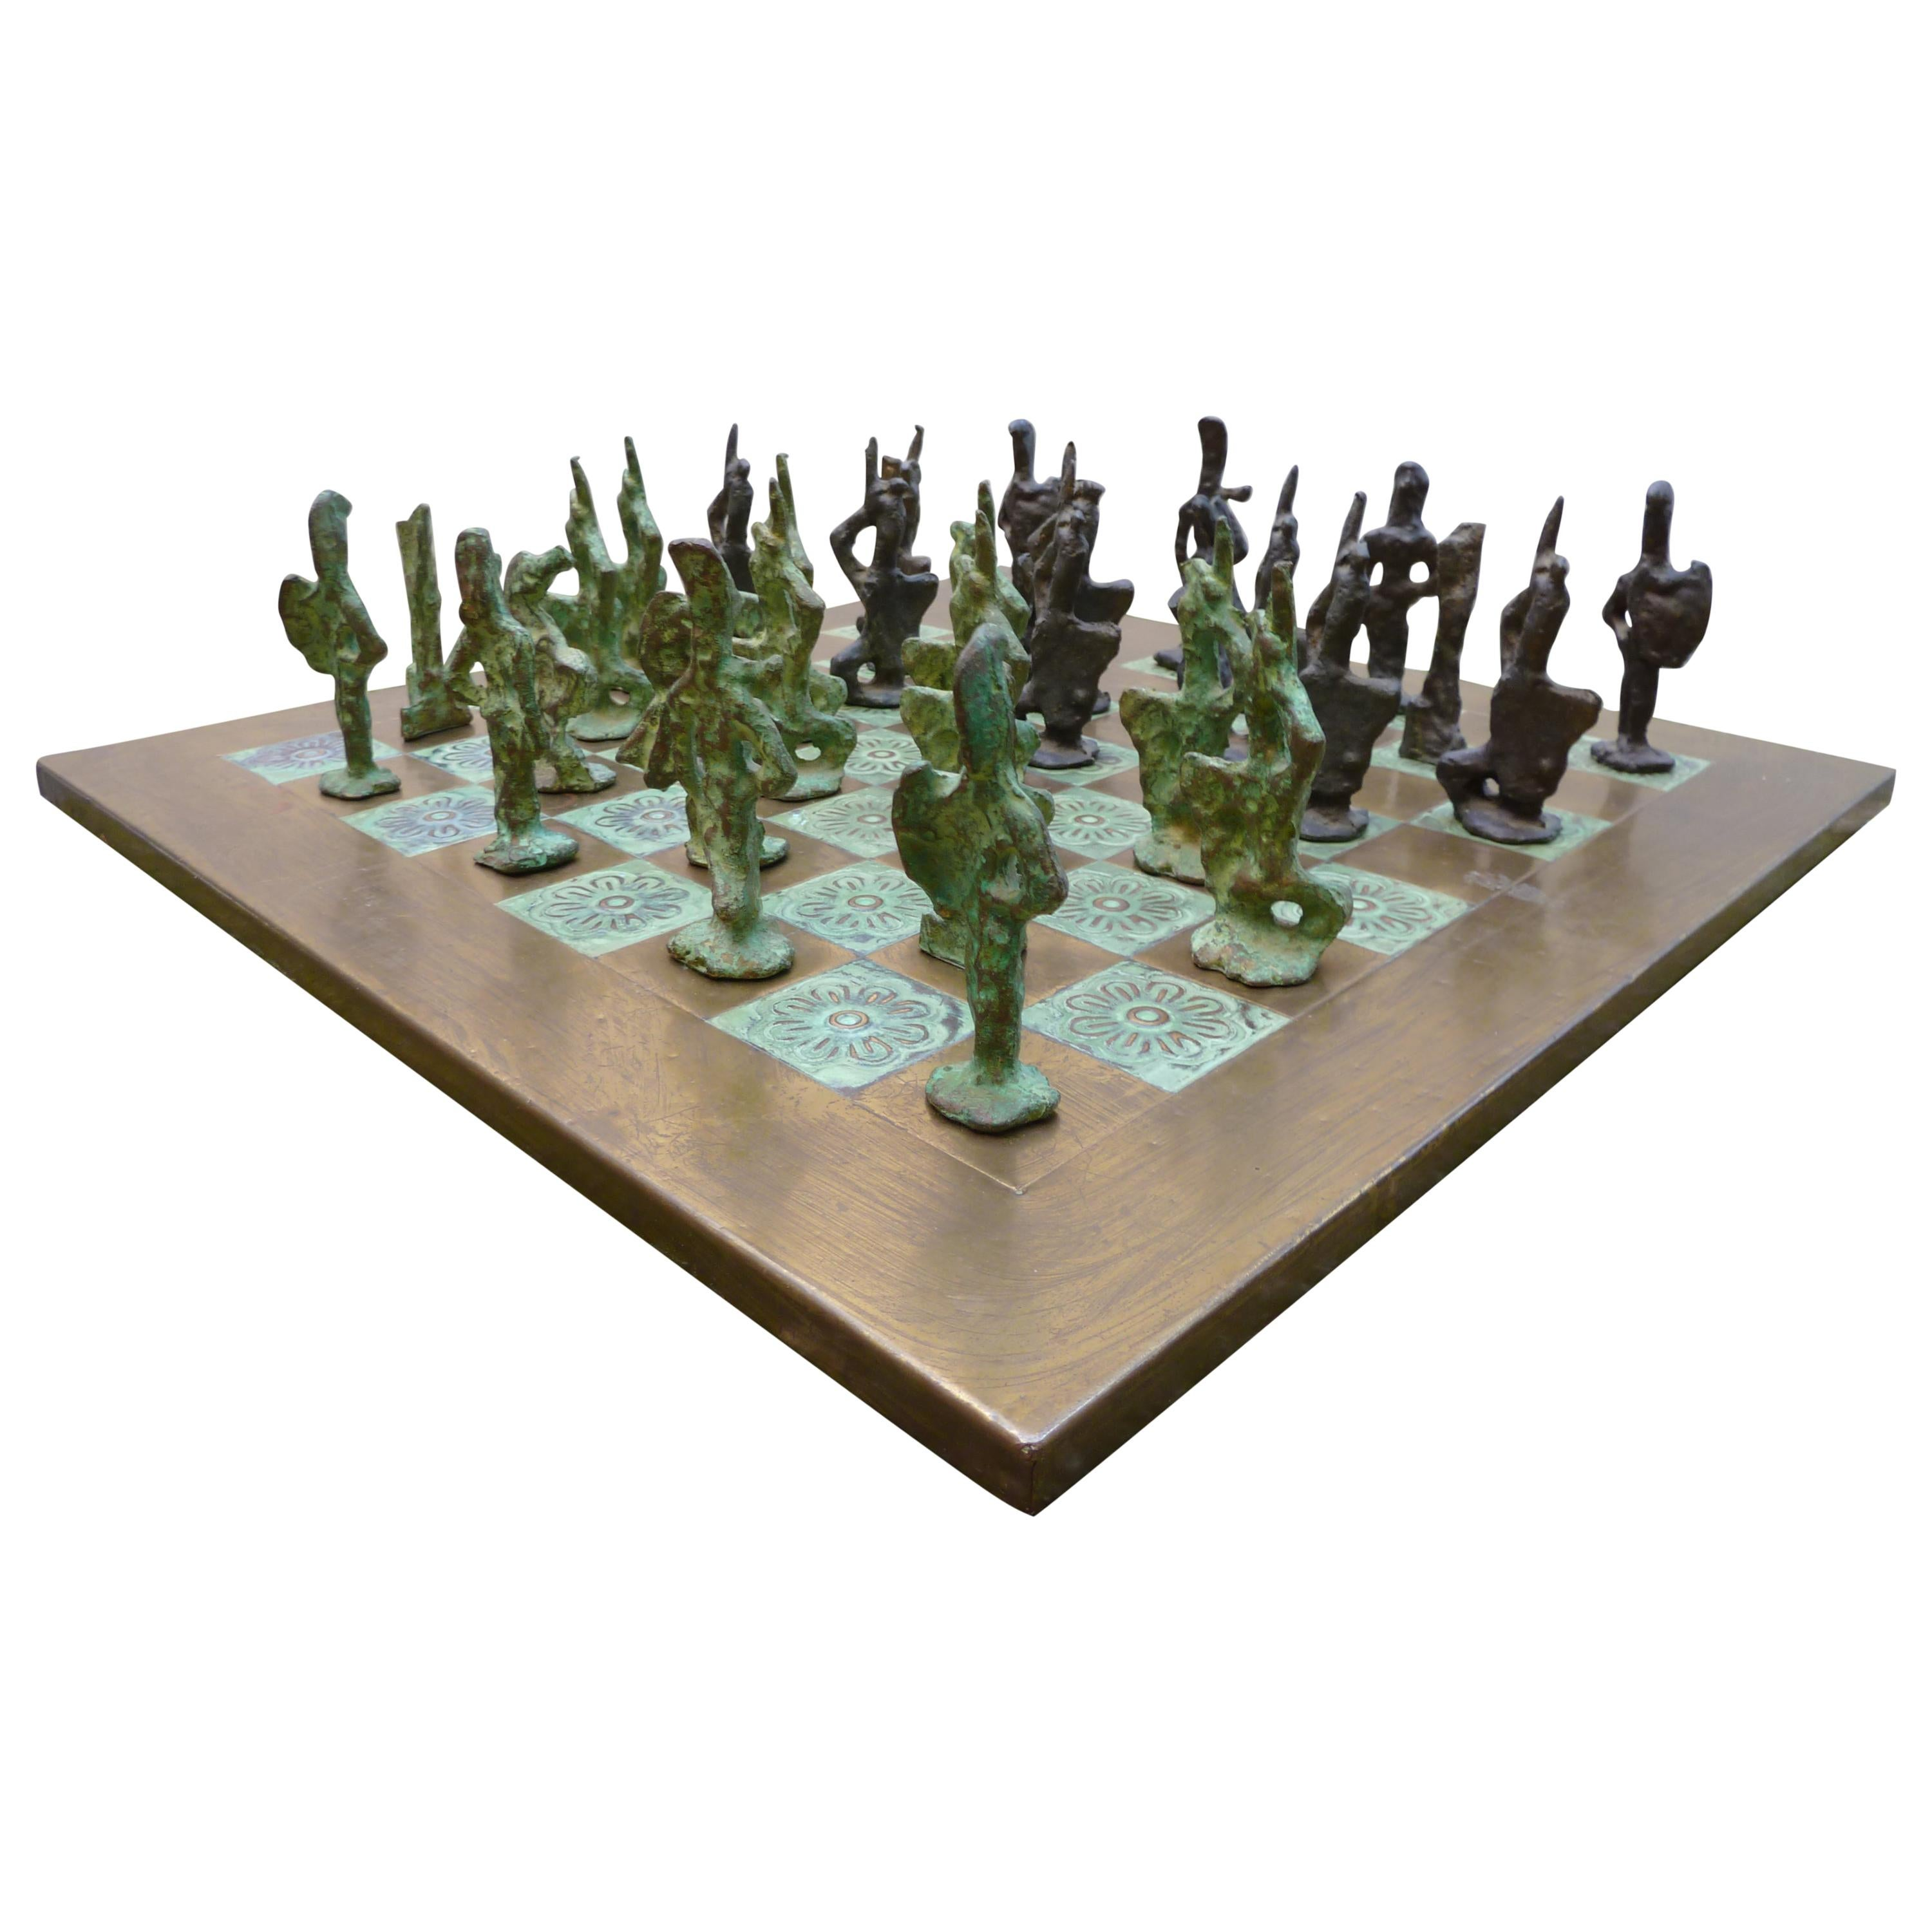 Giacometti Inspired Brutalist Bronze Chess Set